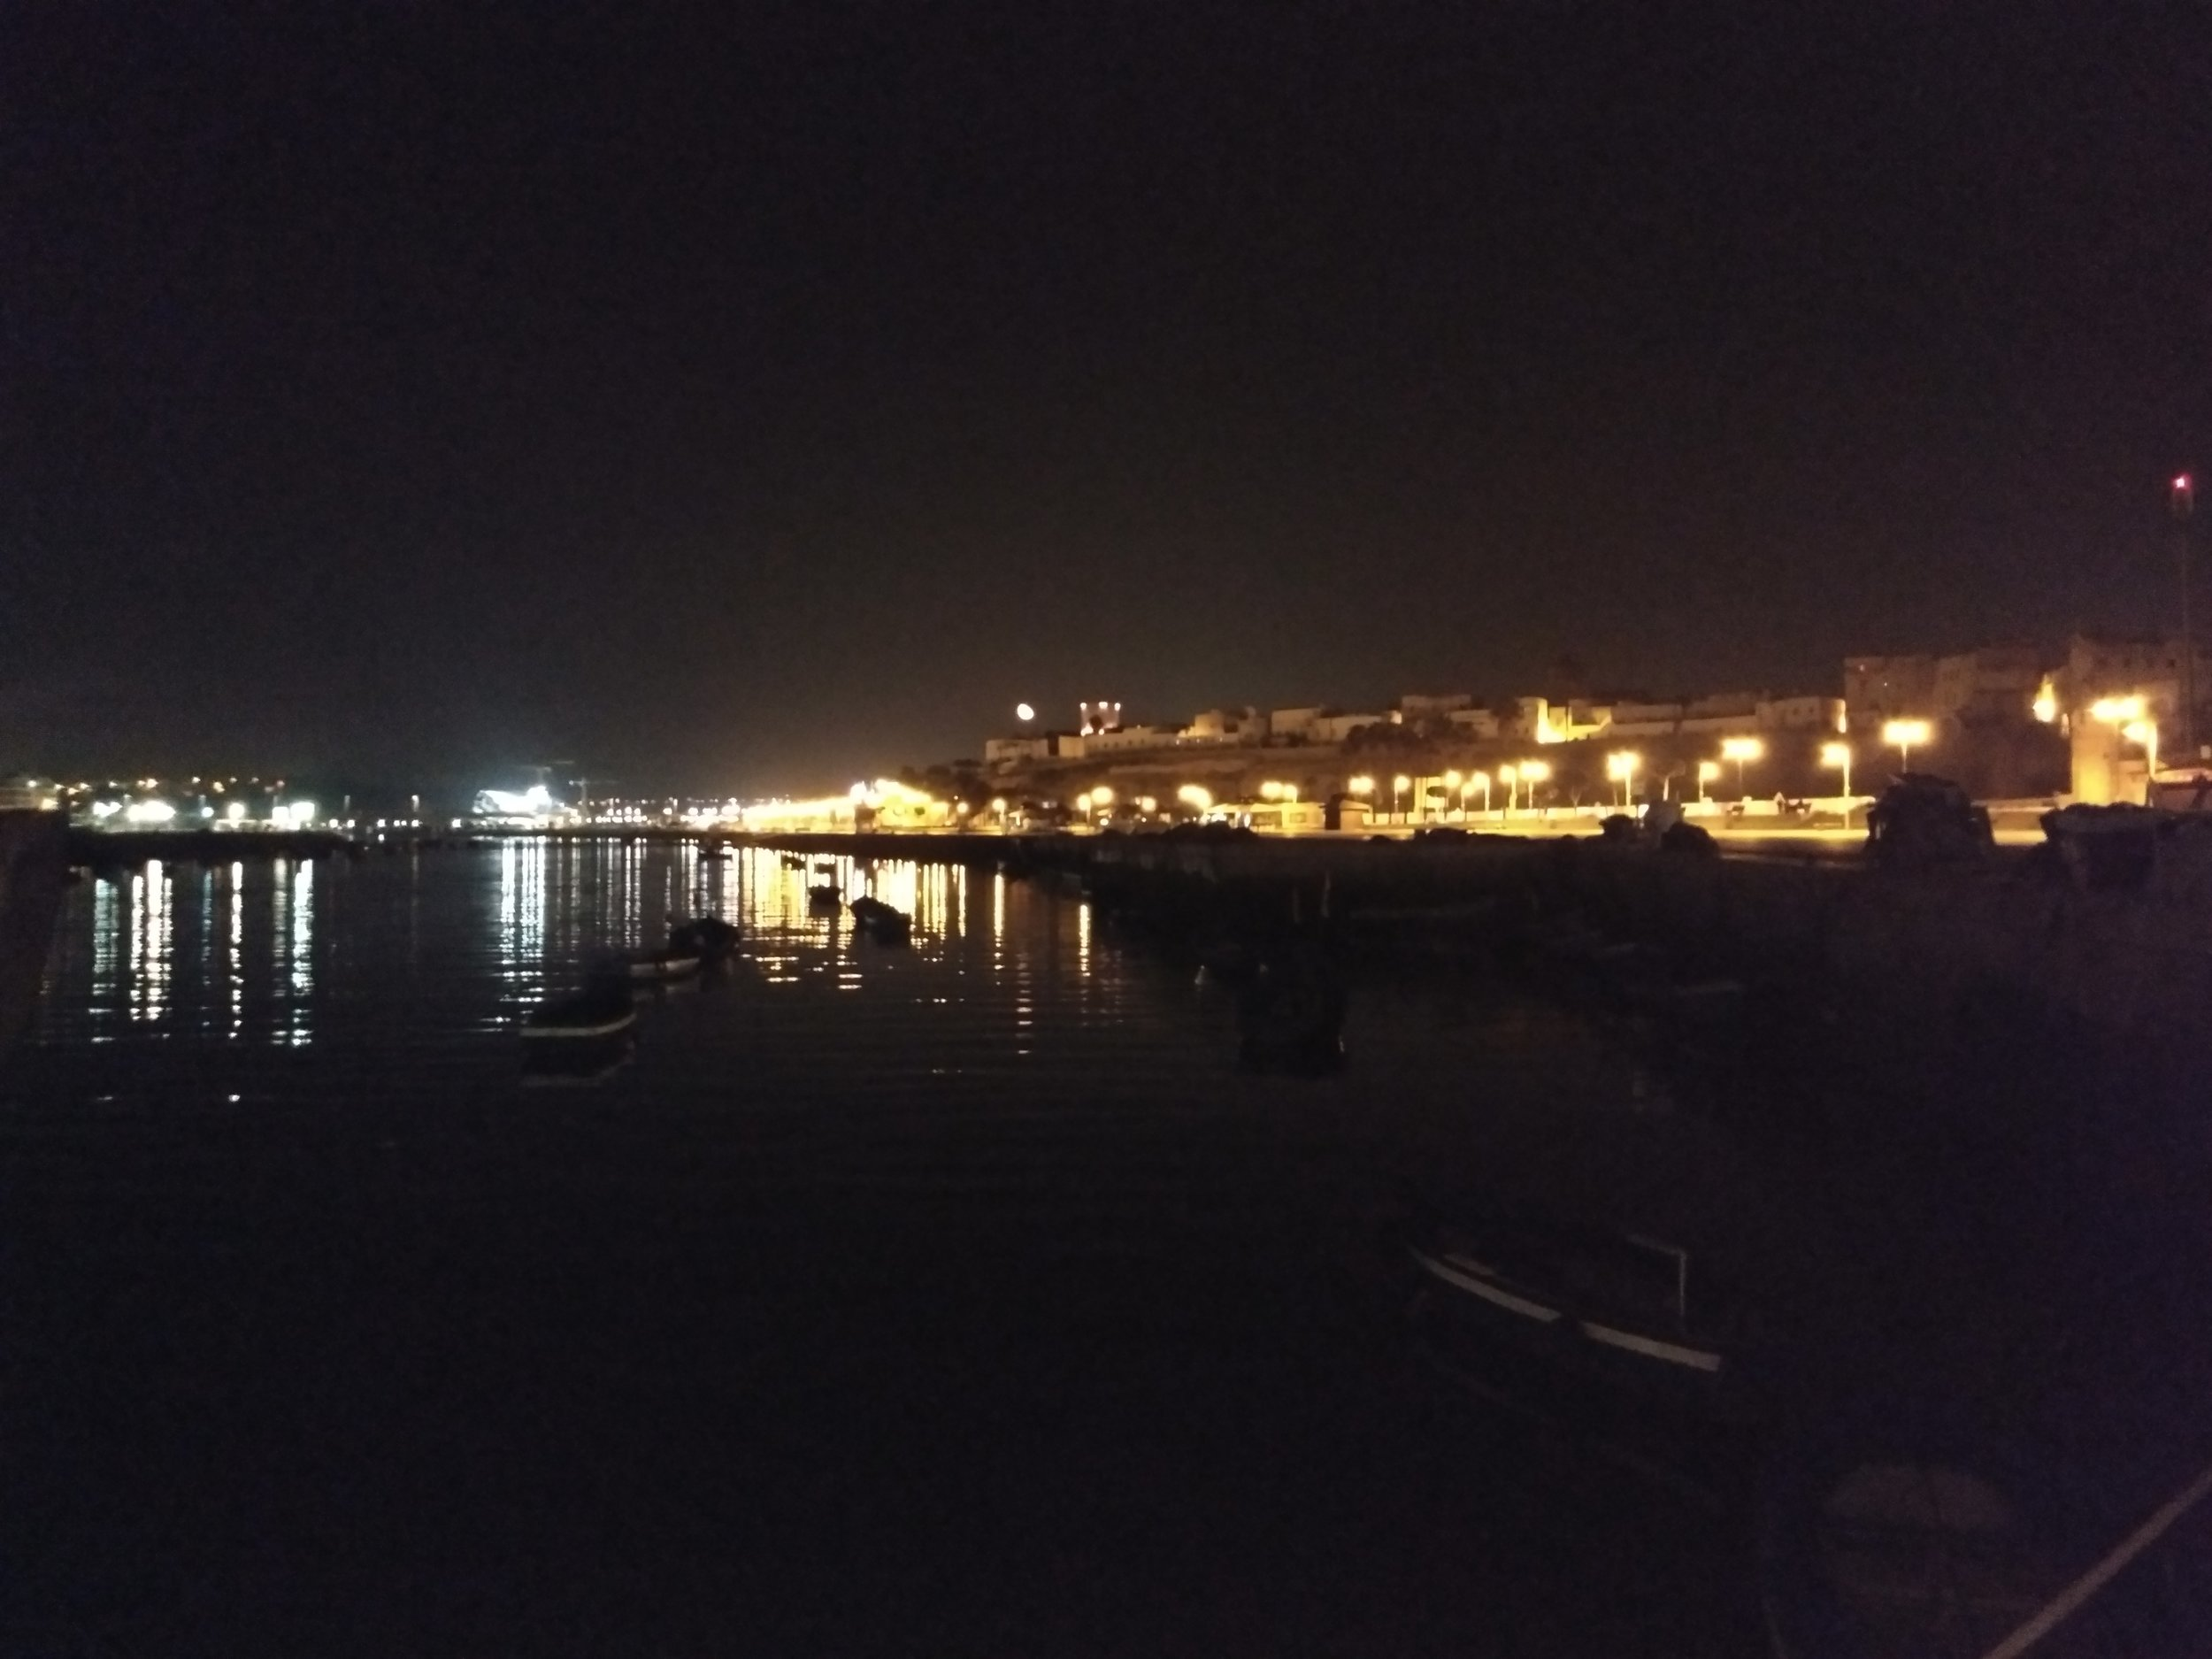 The view from our table. The restaurant is on a boat, docked in the river that divides Rabat and Sale. Photo credit: Silkes, 2018